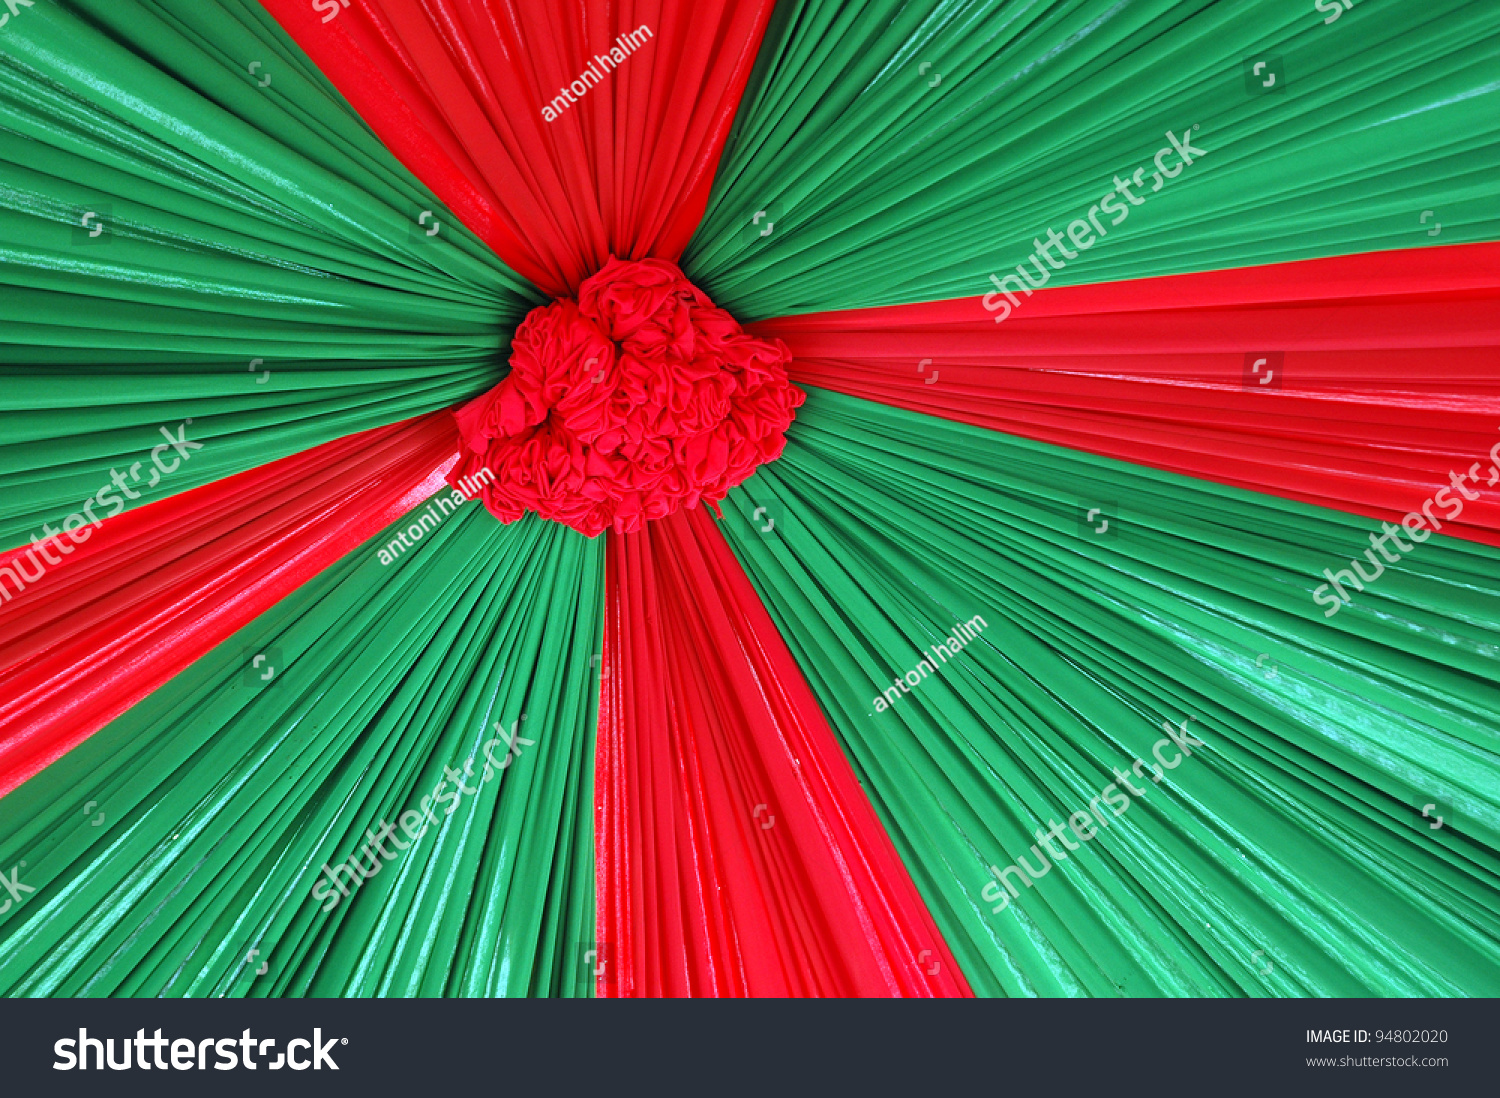 Beautiful Decoration With Red And Green Color Combination